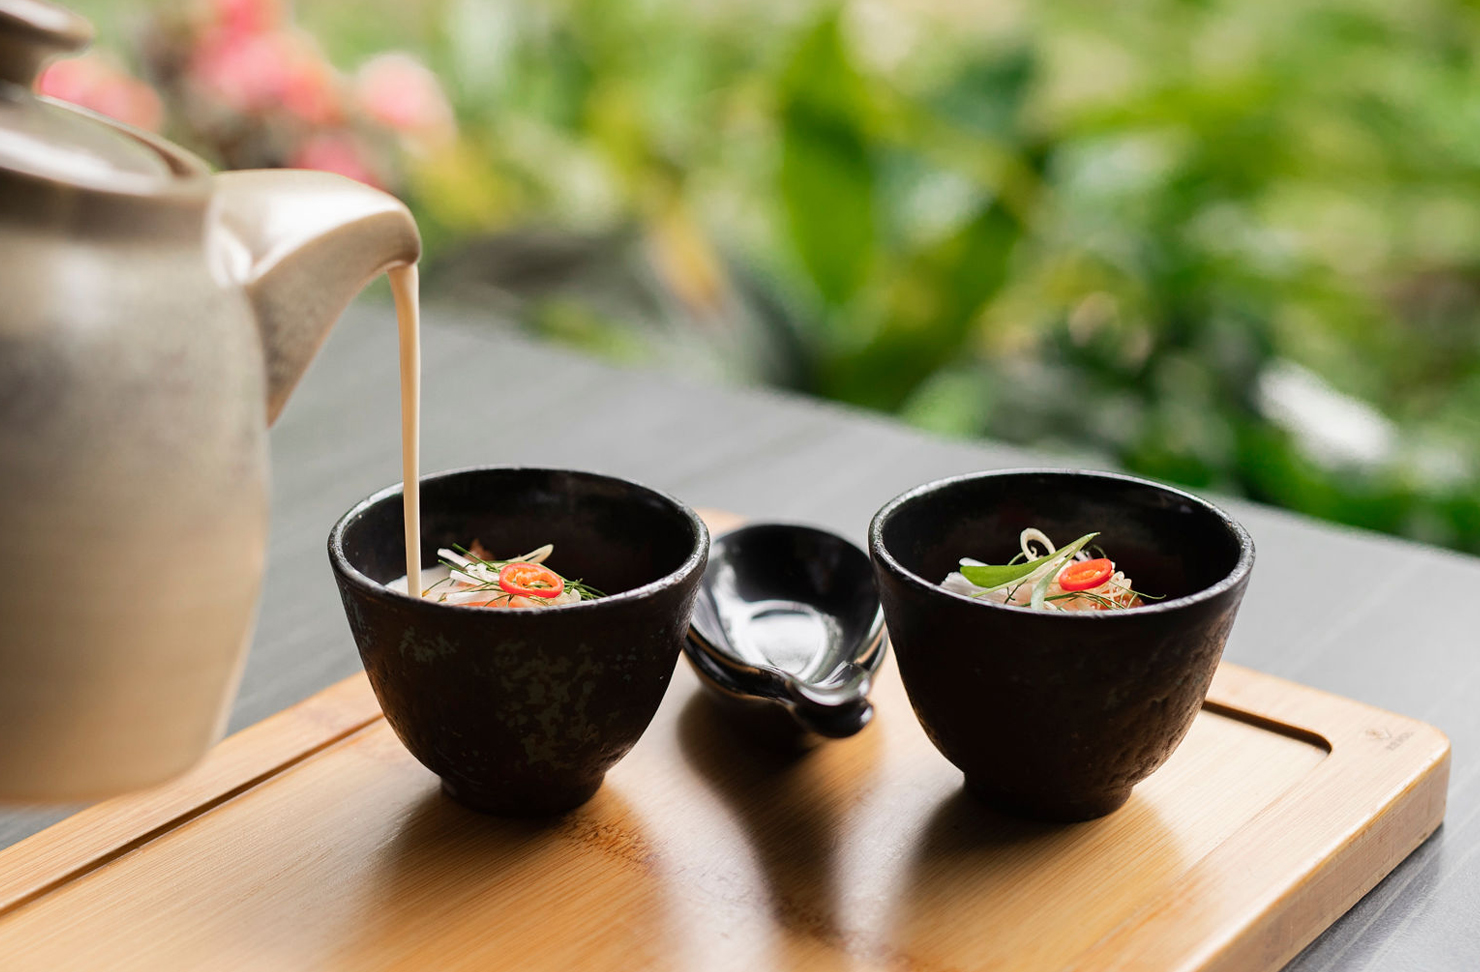 A top lay image of a teapot pouring coconut salmon soup into two small black bowls.